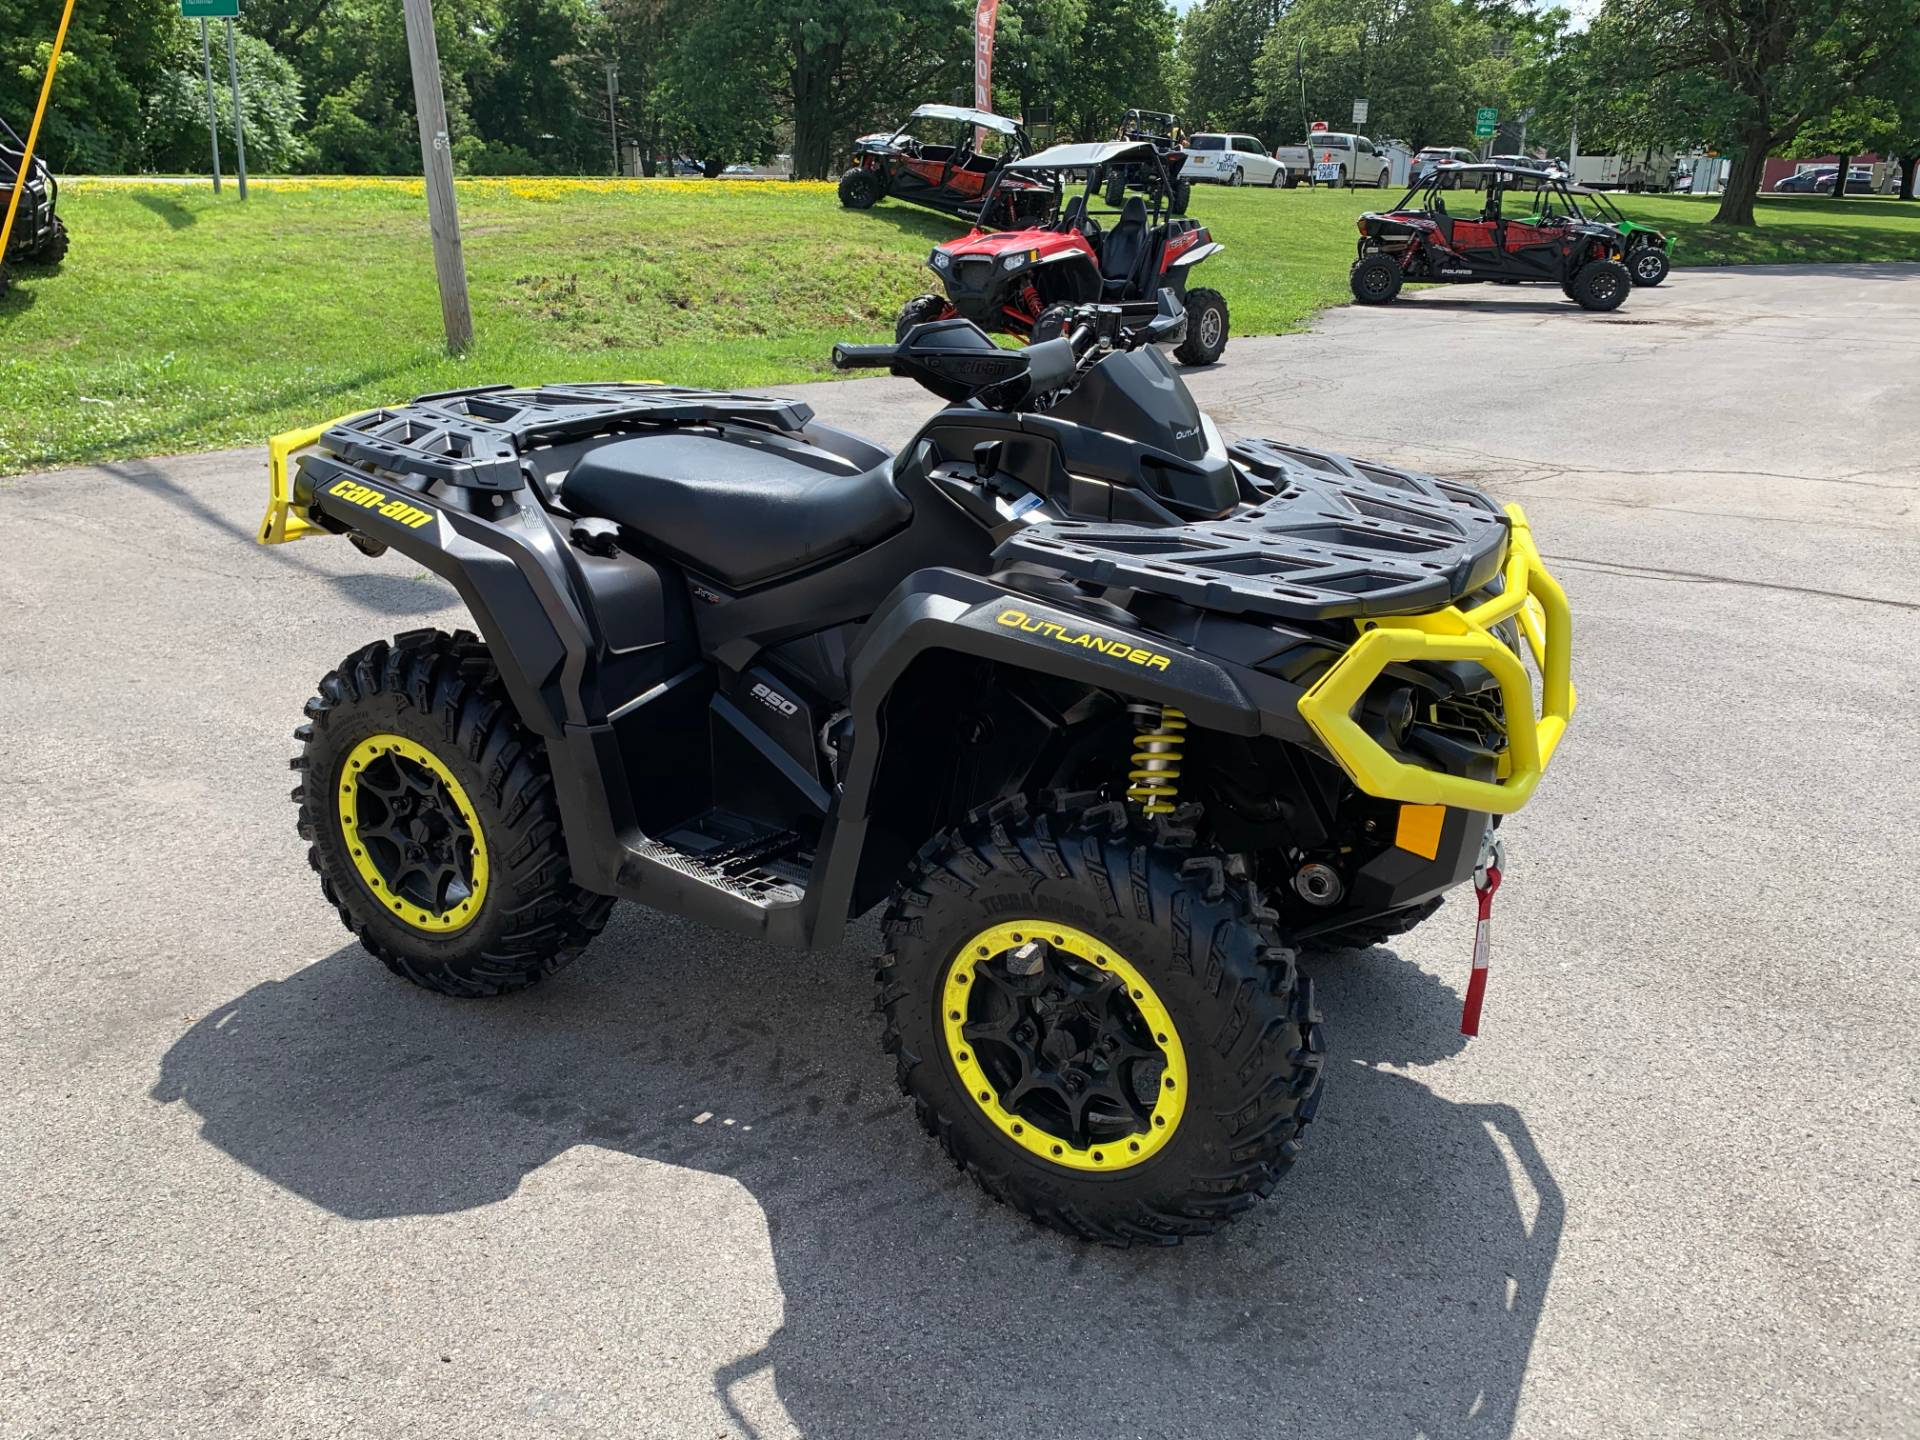 2019 Can-Am Outlander XT-P 850 in Herkimer, New York - Photo 9